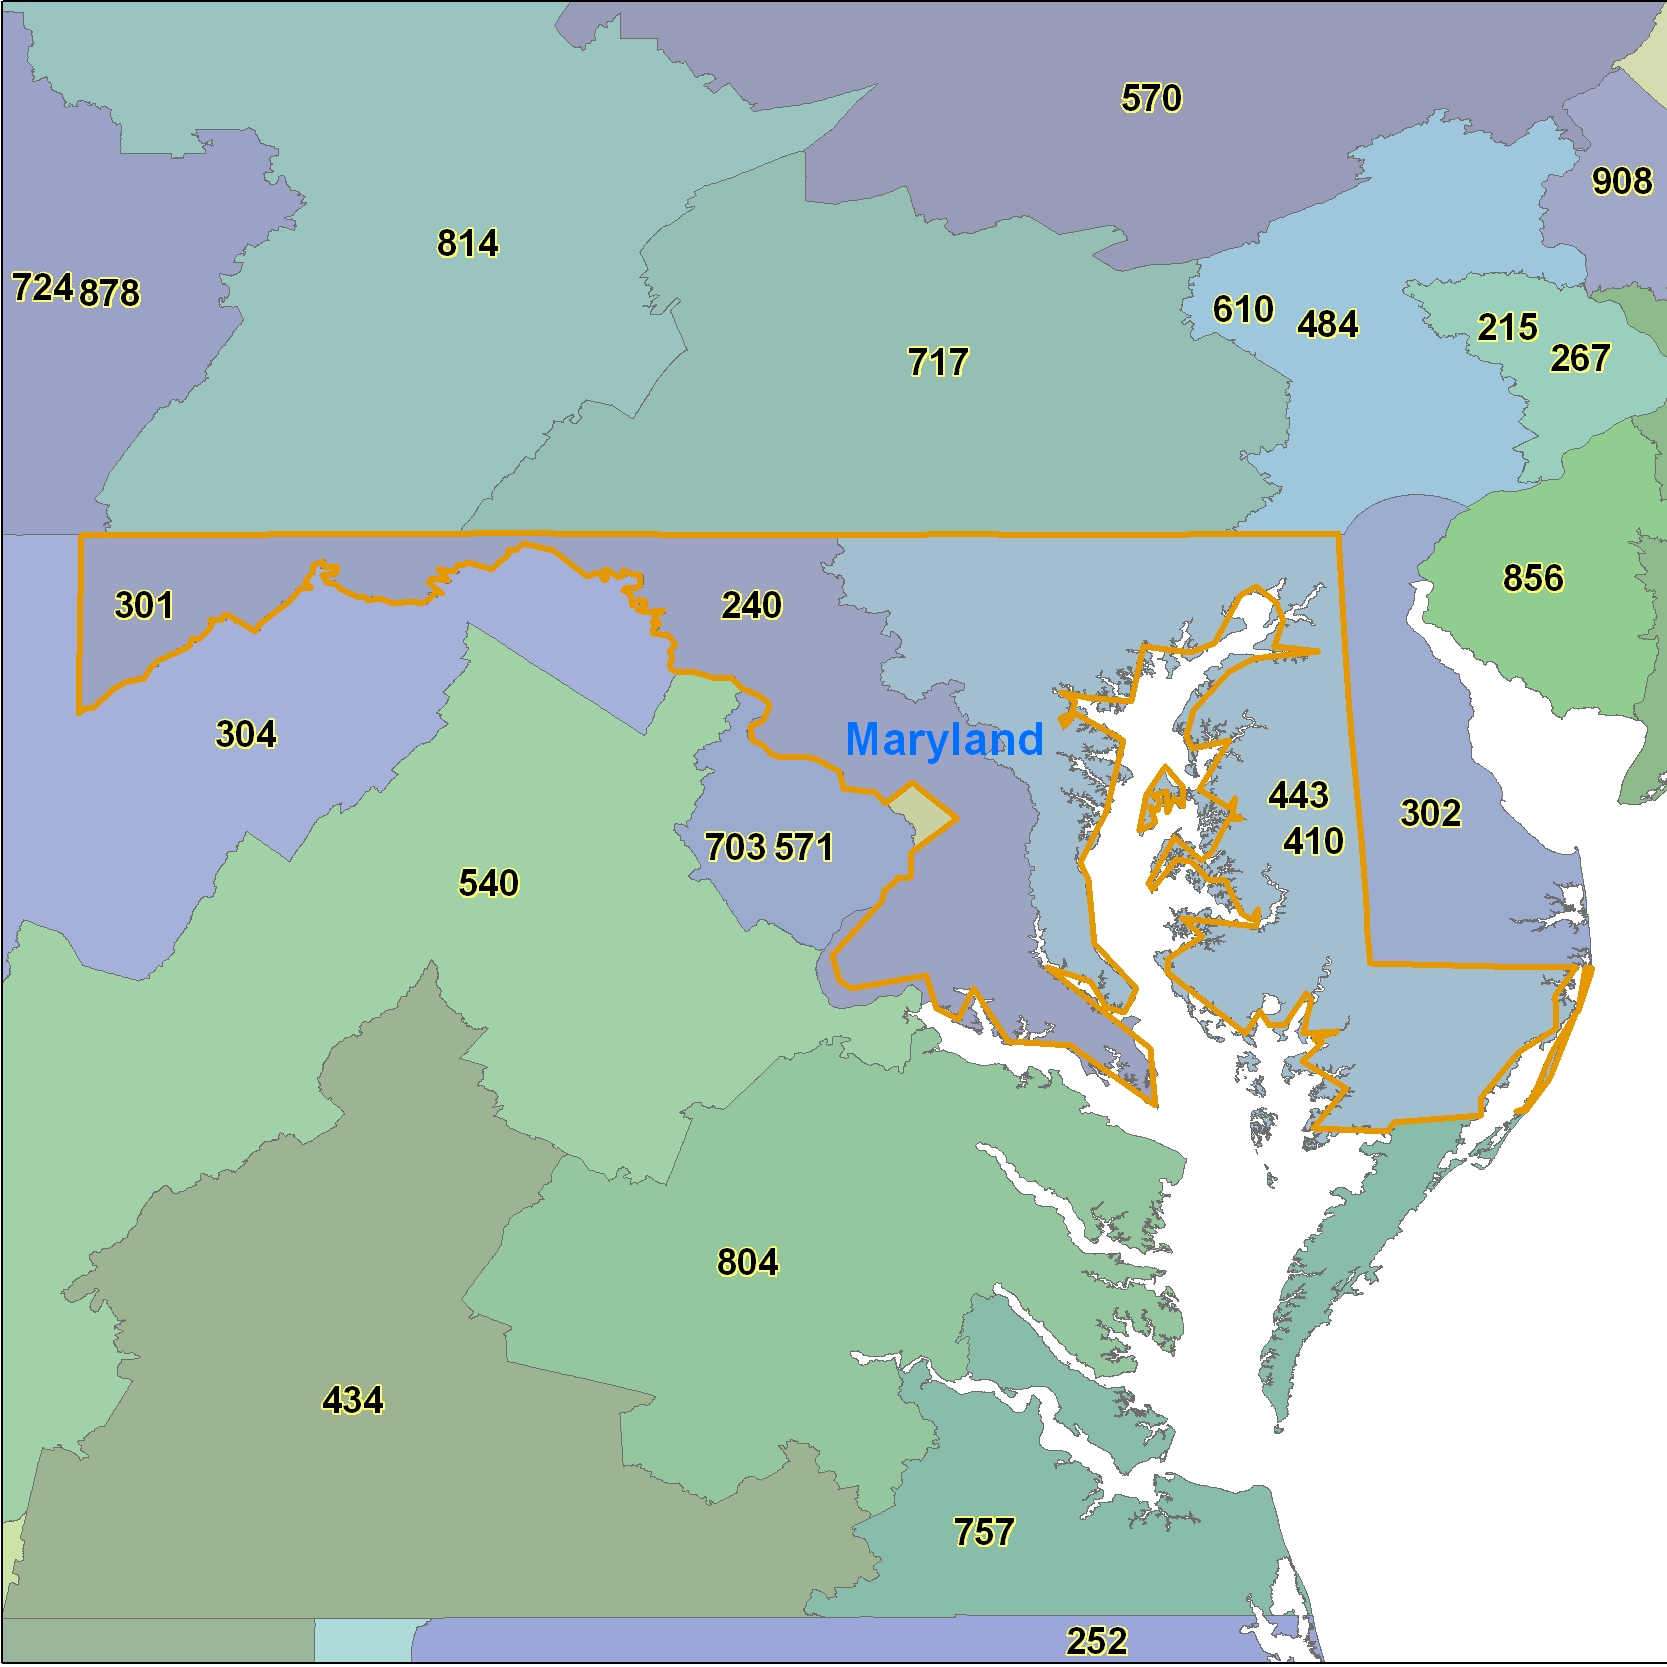 Maryland (MD) Area Code Map